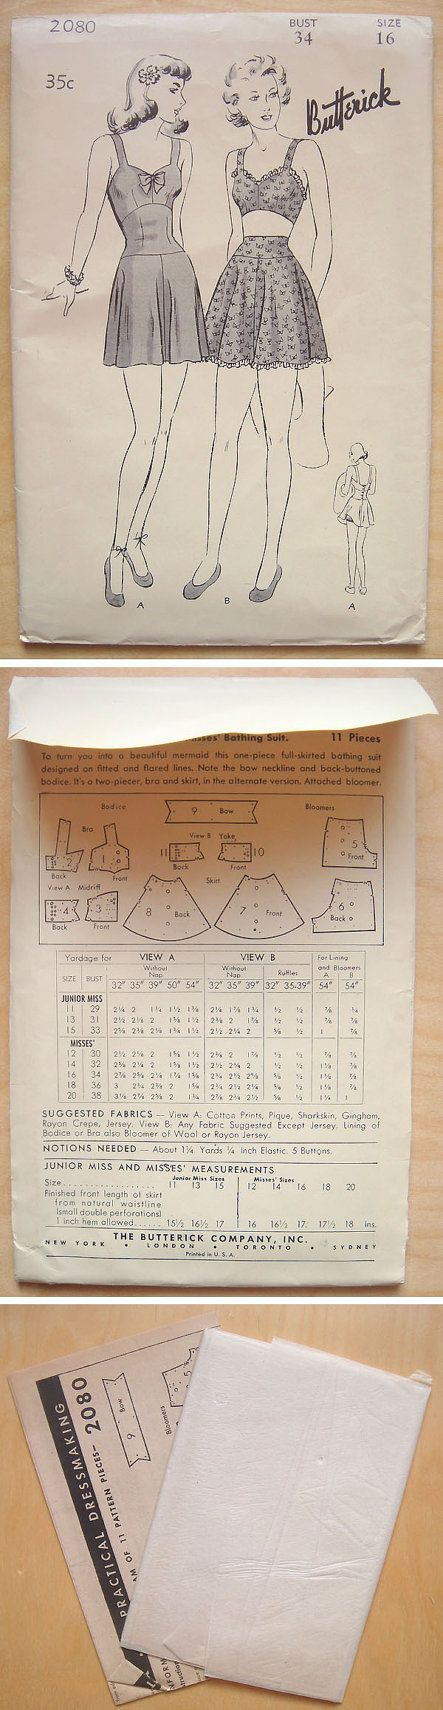 Potential bathing suit pattern - size 16 (would need to adjust to 12/13)